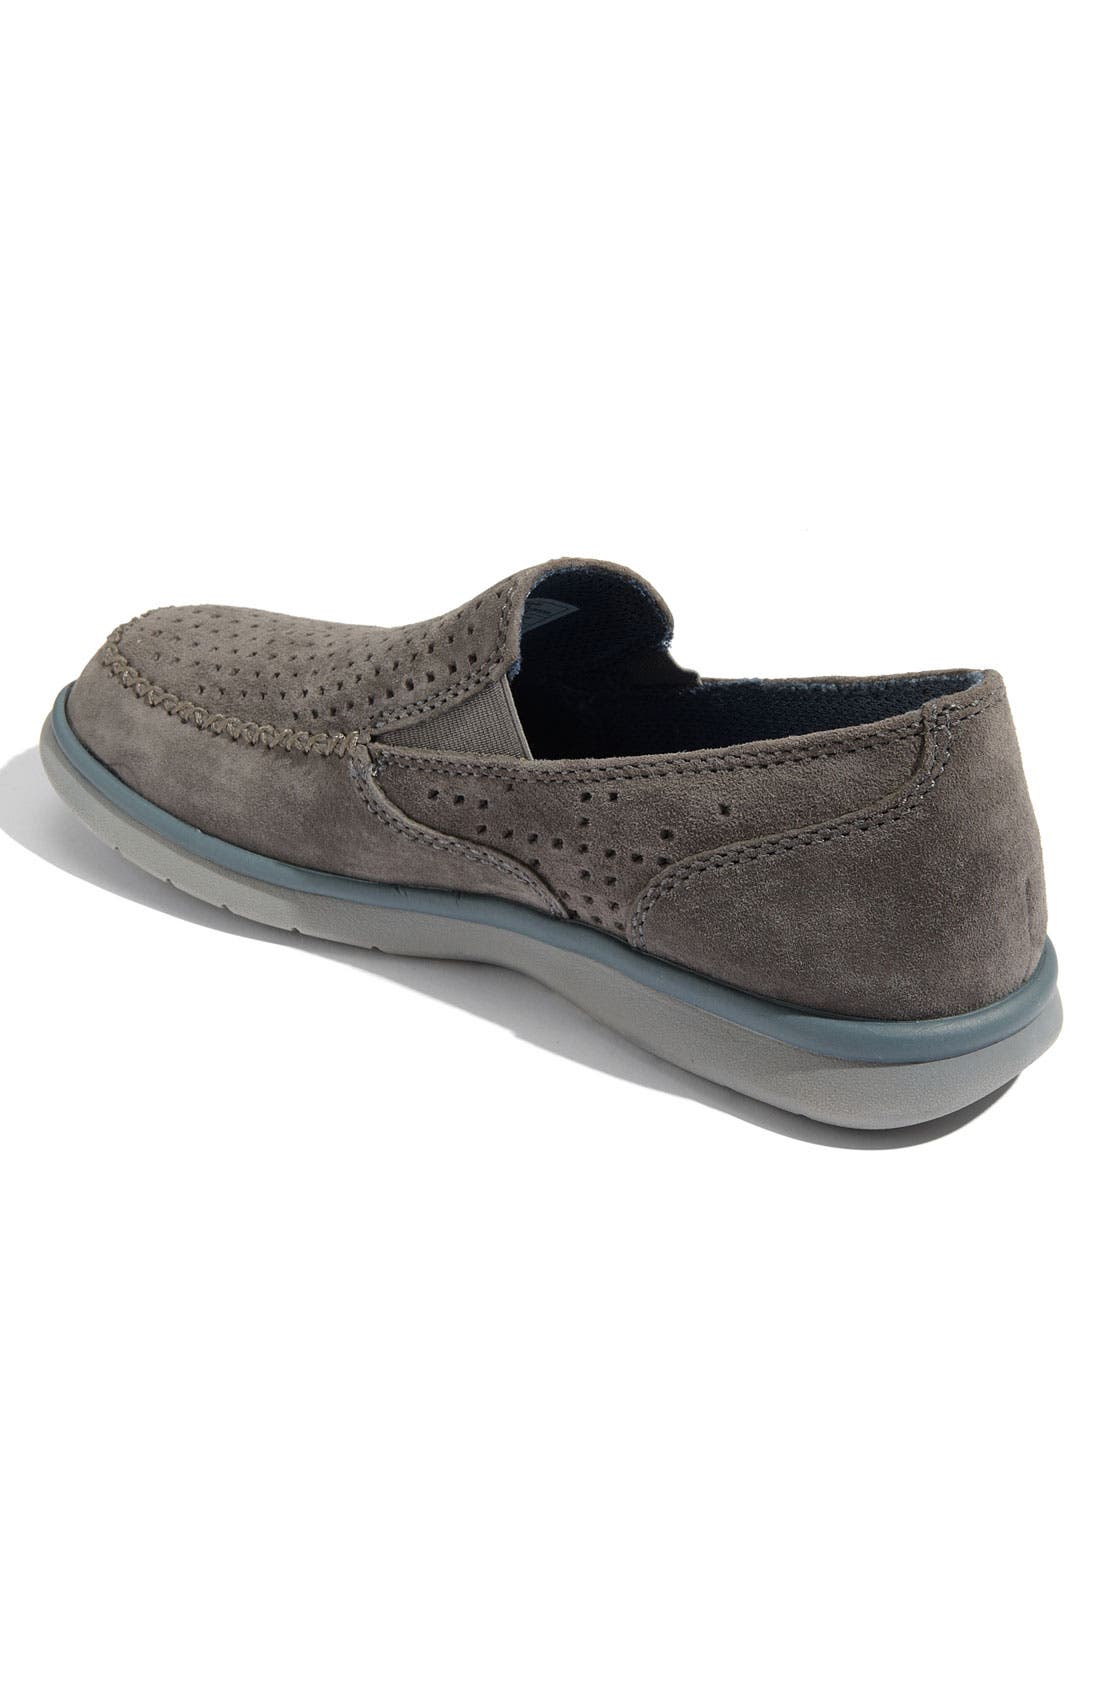 PATAGONIA,                             'Maui Air' Slip-On,                             Alternate thumbnail 3, color,                             020